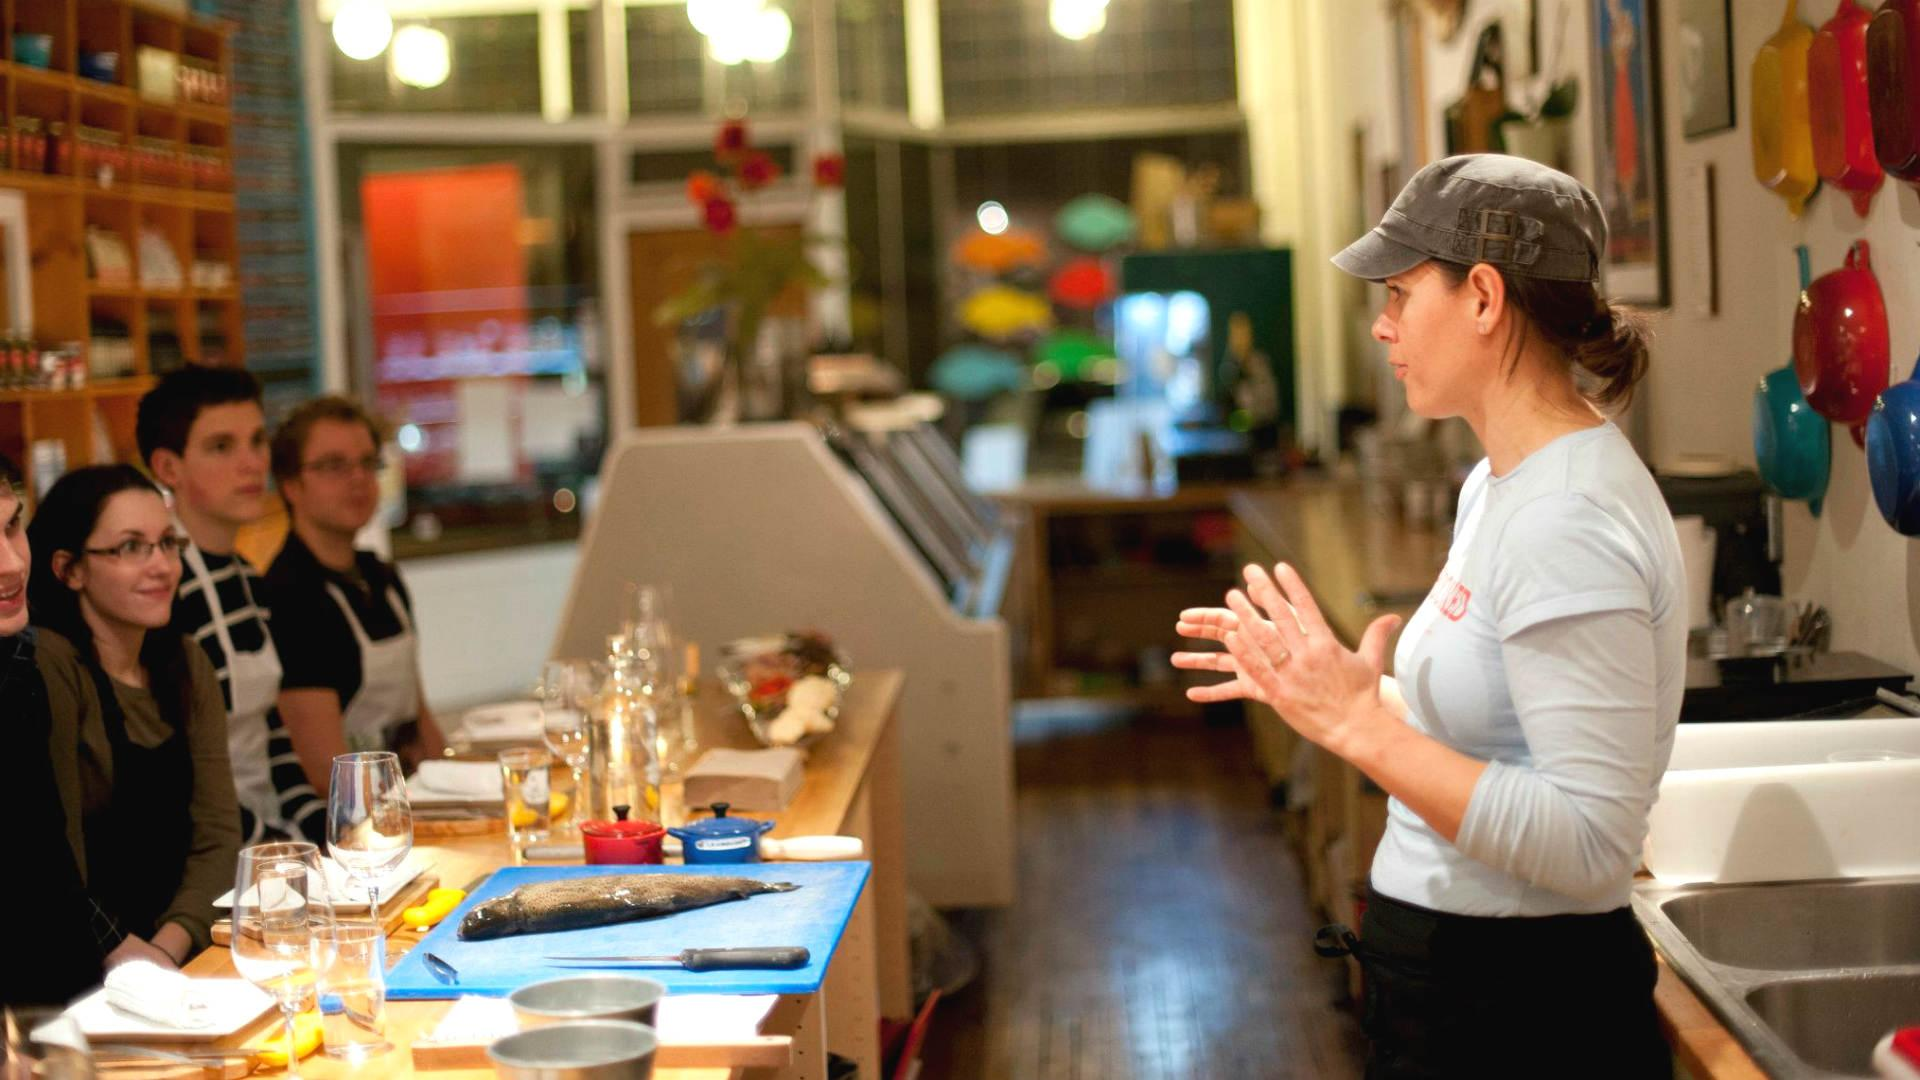 Places offering cool cooking classes in Toronto | Someone teaches a class at Hooked